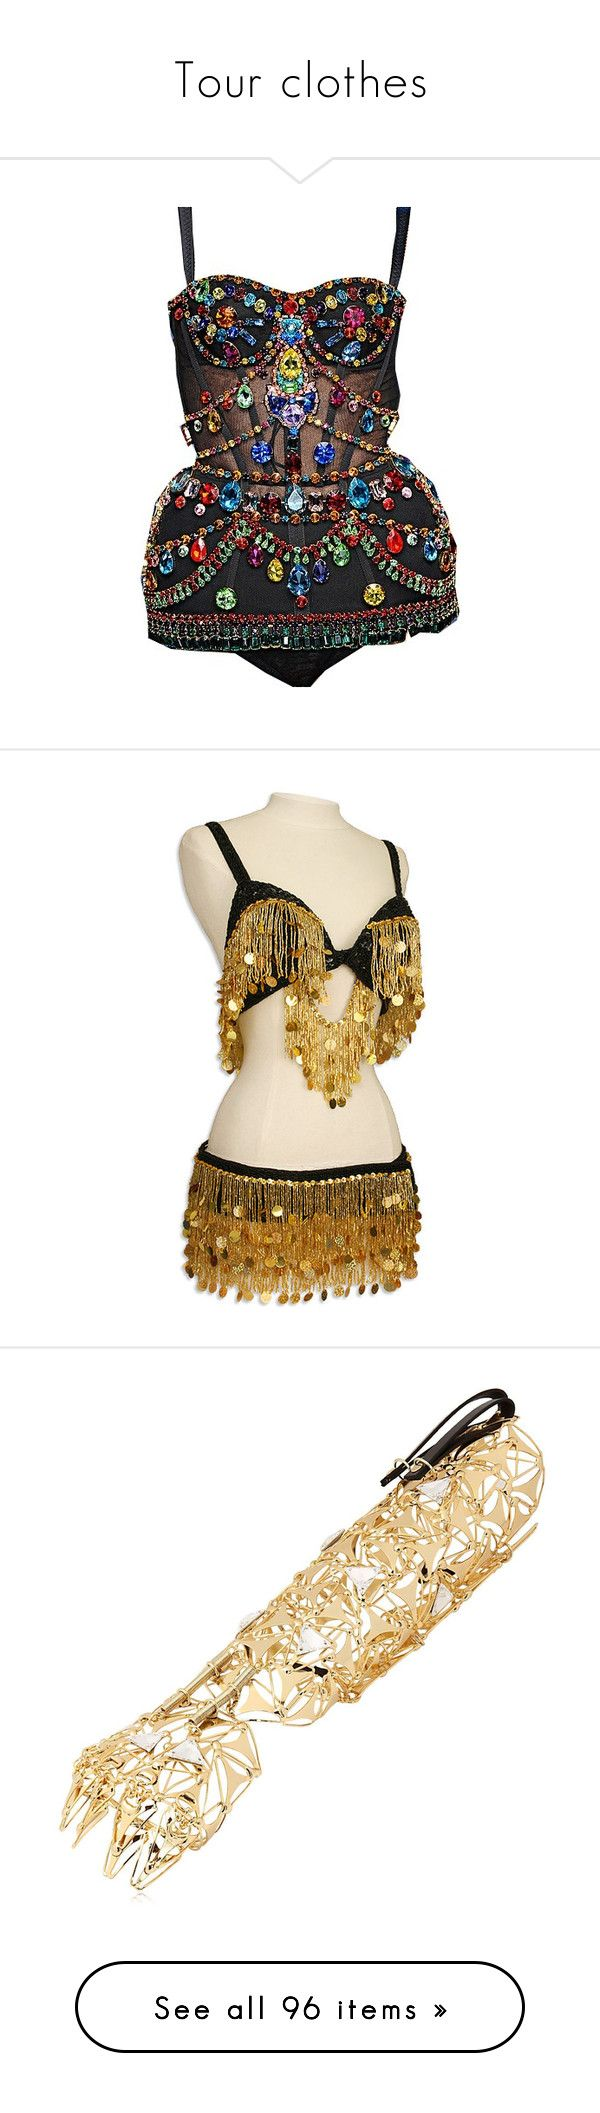 """""""Tour clothes"""" by lexiesocrazy ❤ liked on Polyvore featuring dresses, tops, playsuit, bodysuits, costumes, belly dance, dance costumes, misc, sequin belly dancer costume and gold halloween costumes"""